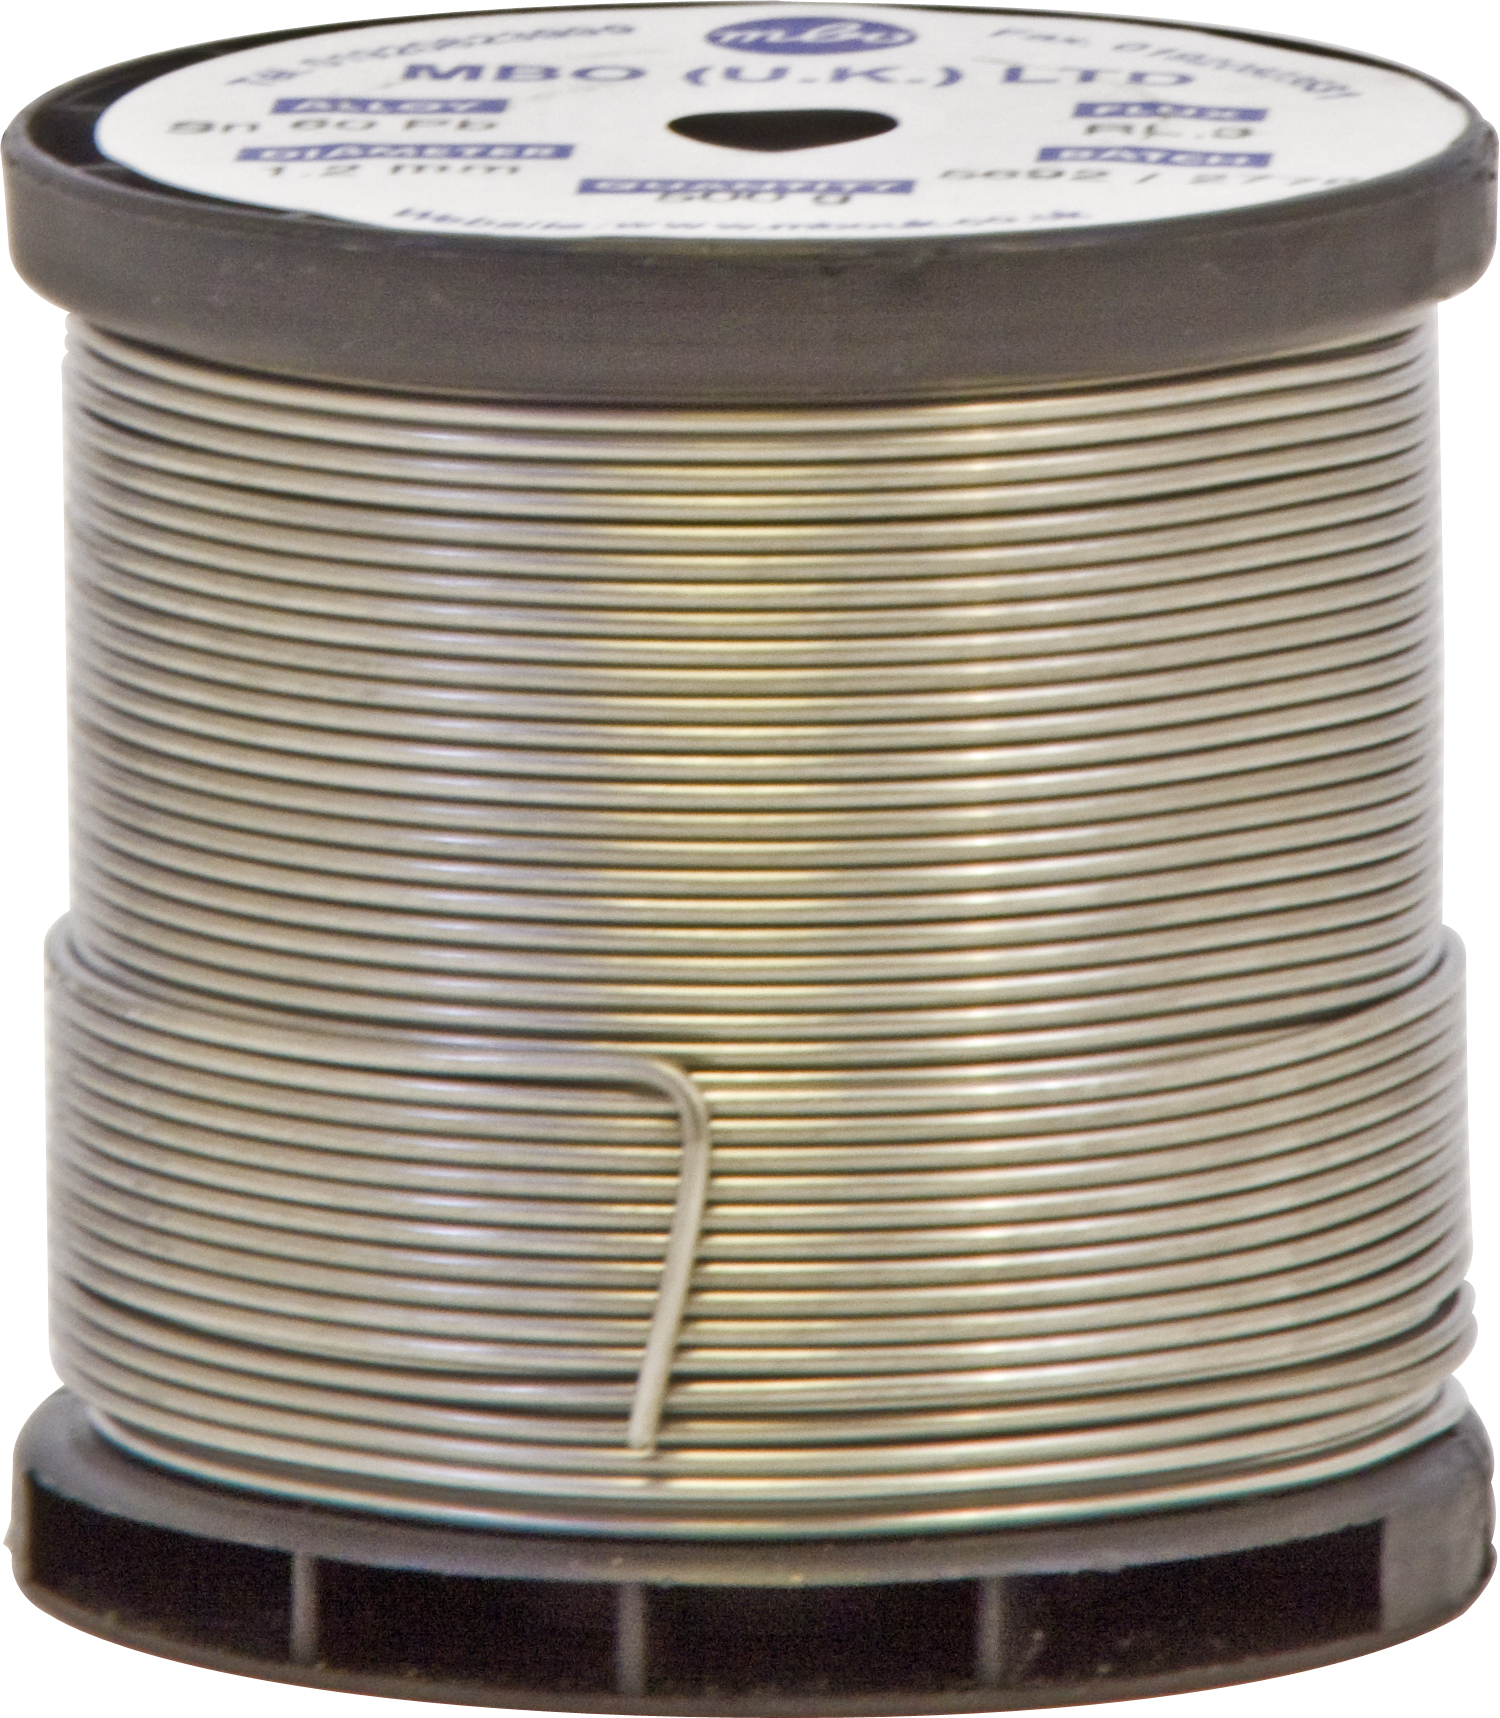 0.5kg Solder Wire Flux Cored 60 Tin//40 Lead 1.2 mm Coil SO18